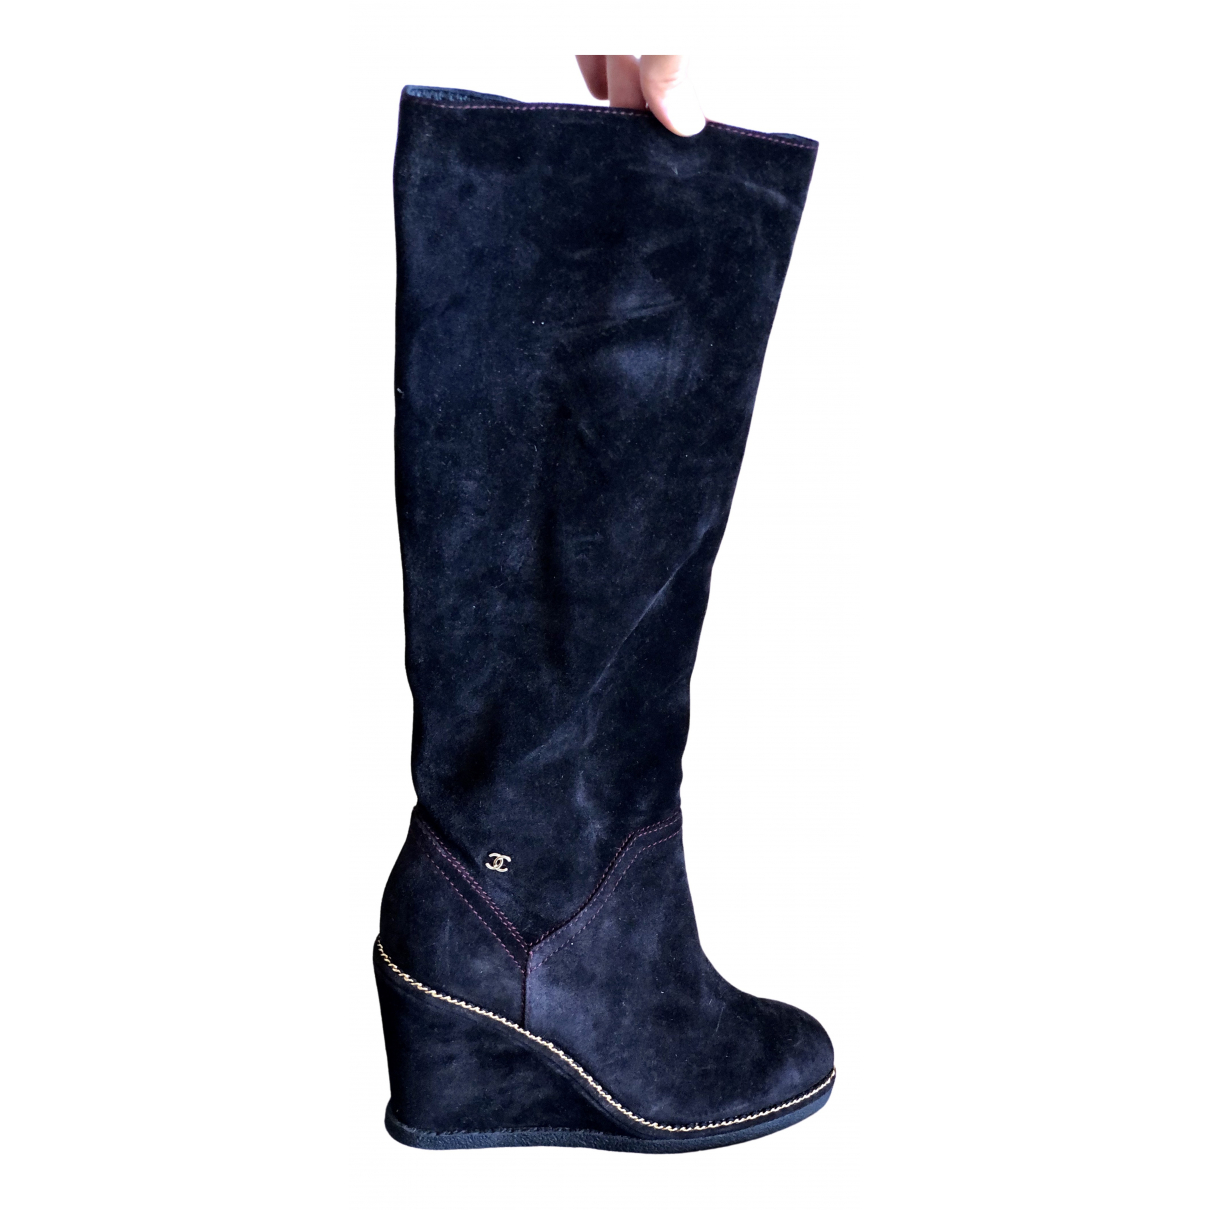 Chanel \N Black Suede Boots for Women 41 EU